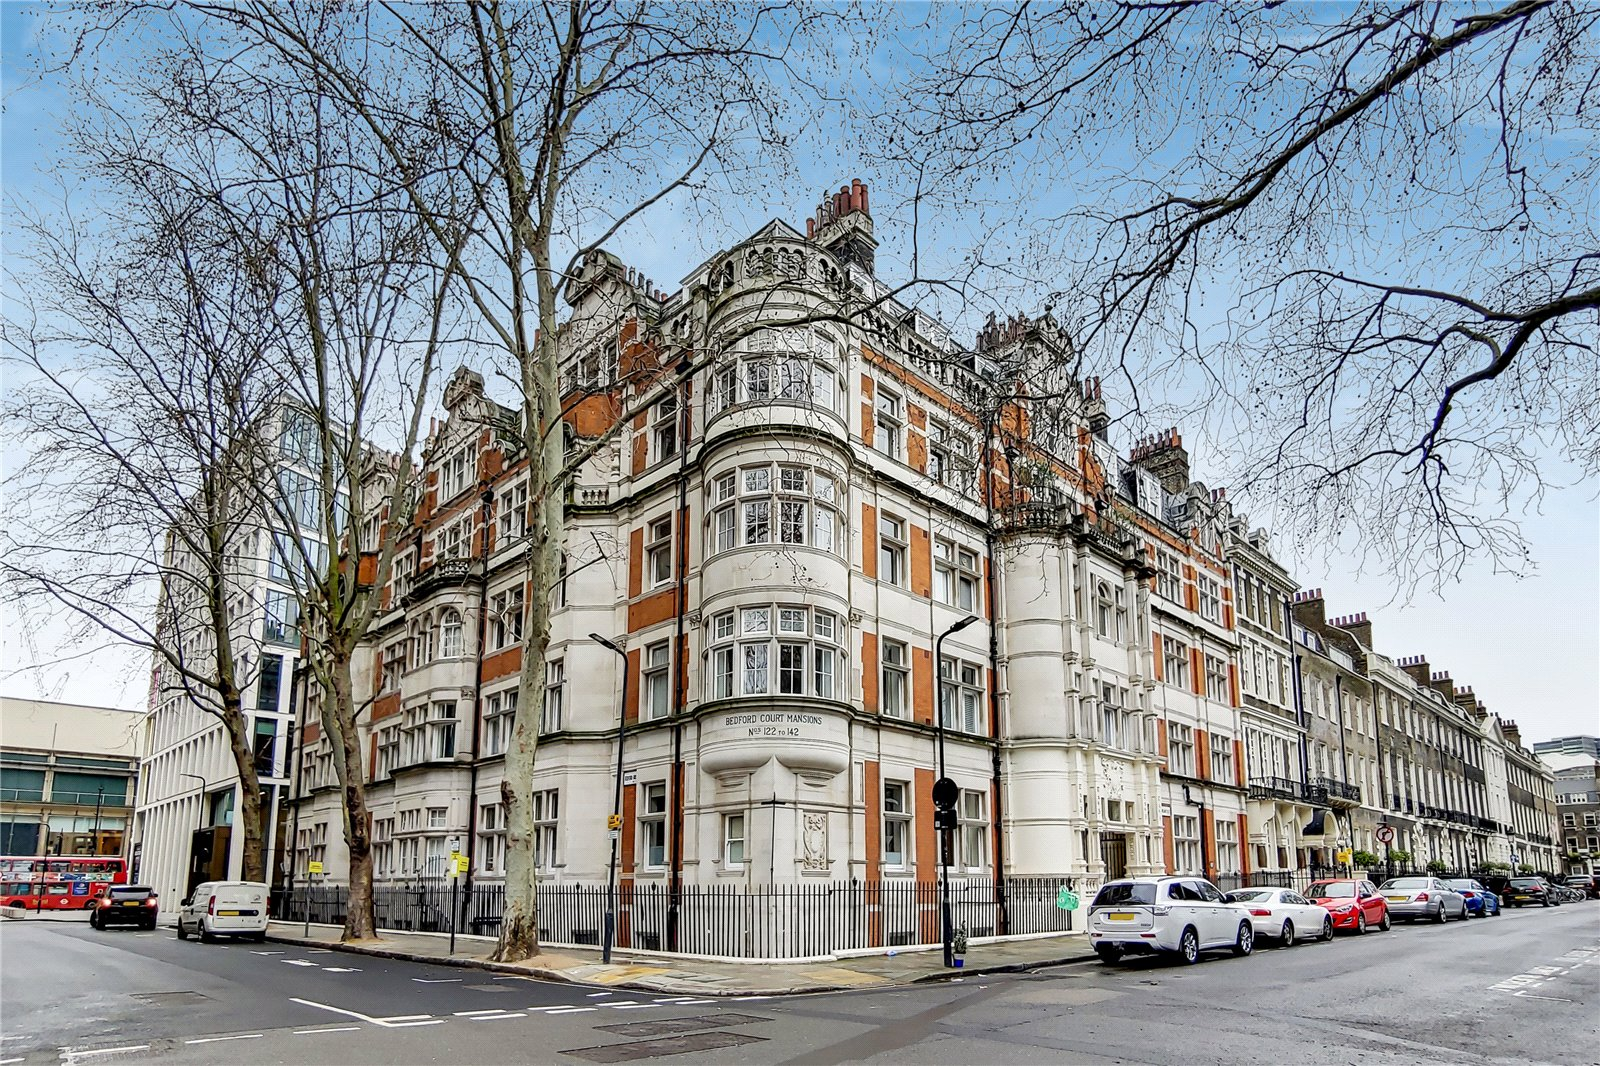 Adeline Place, Bloomsbury, WC1B